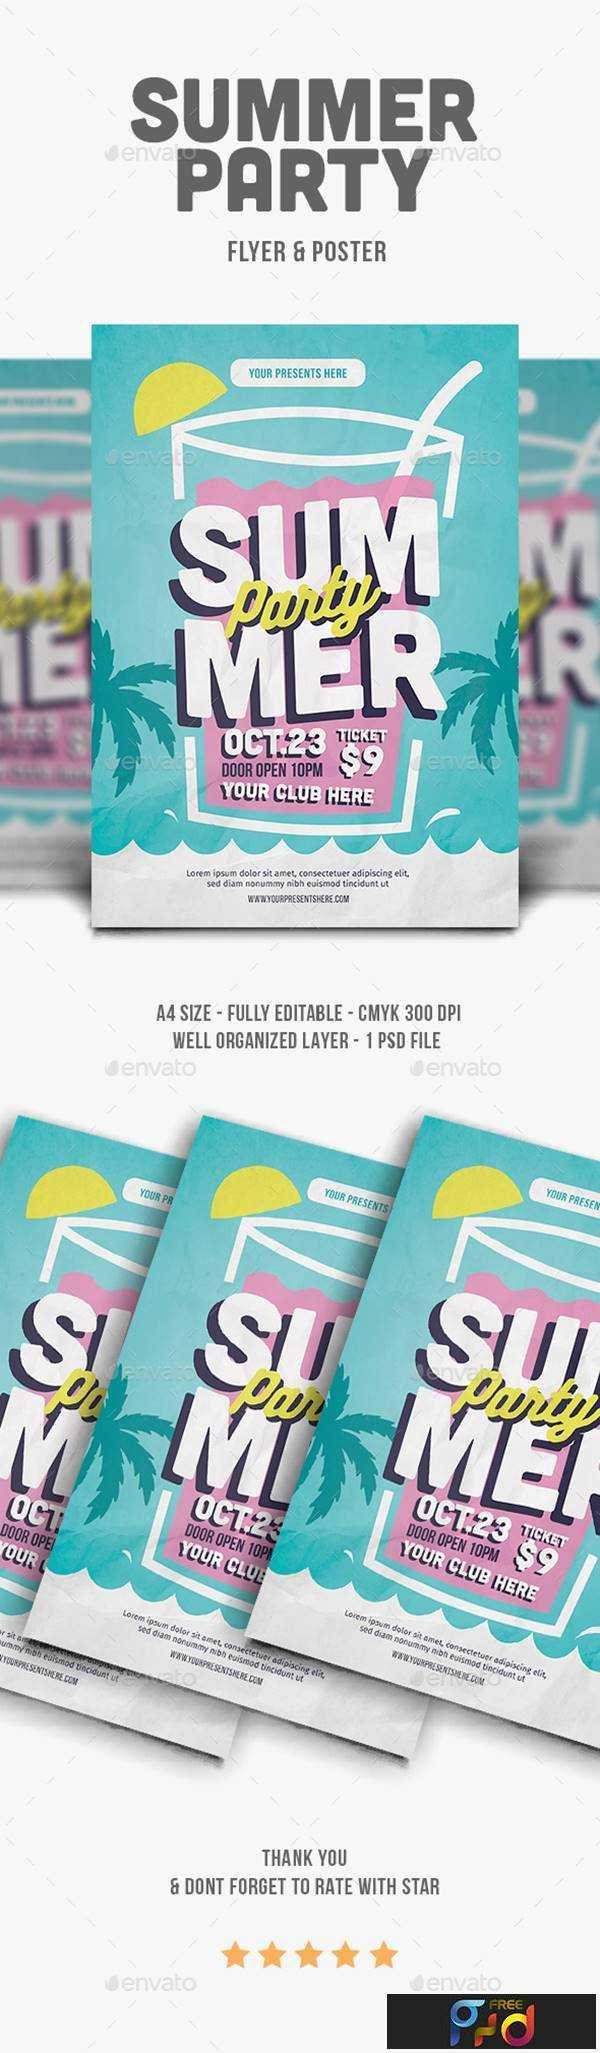 1806110 Summer Party Flyer 21937299 1